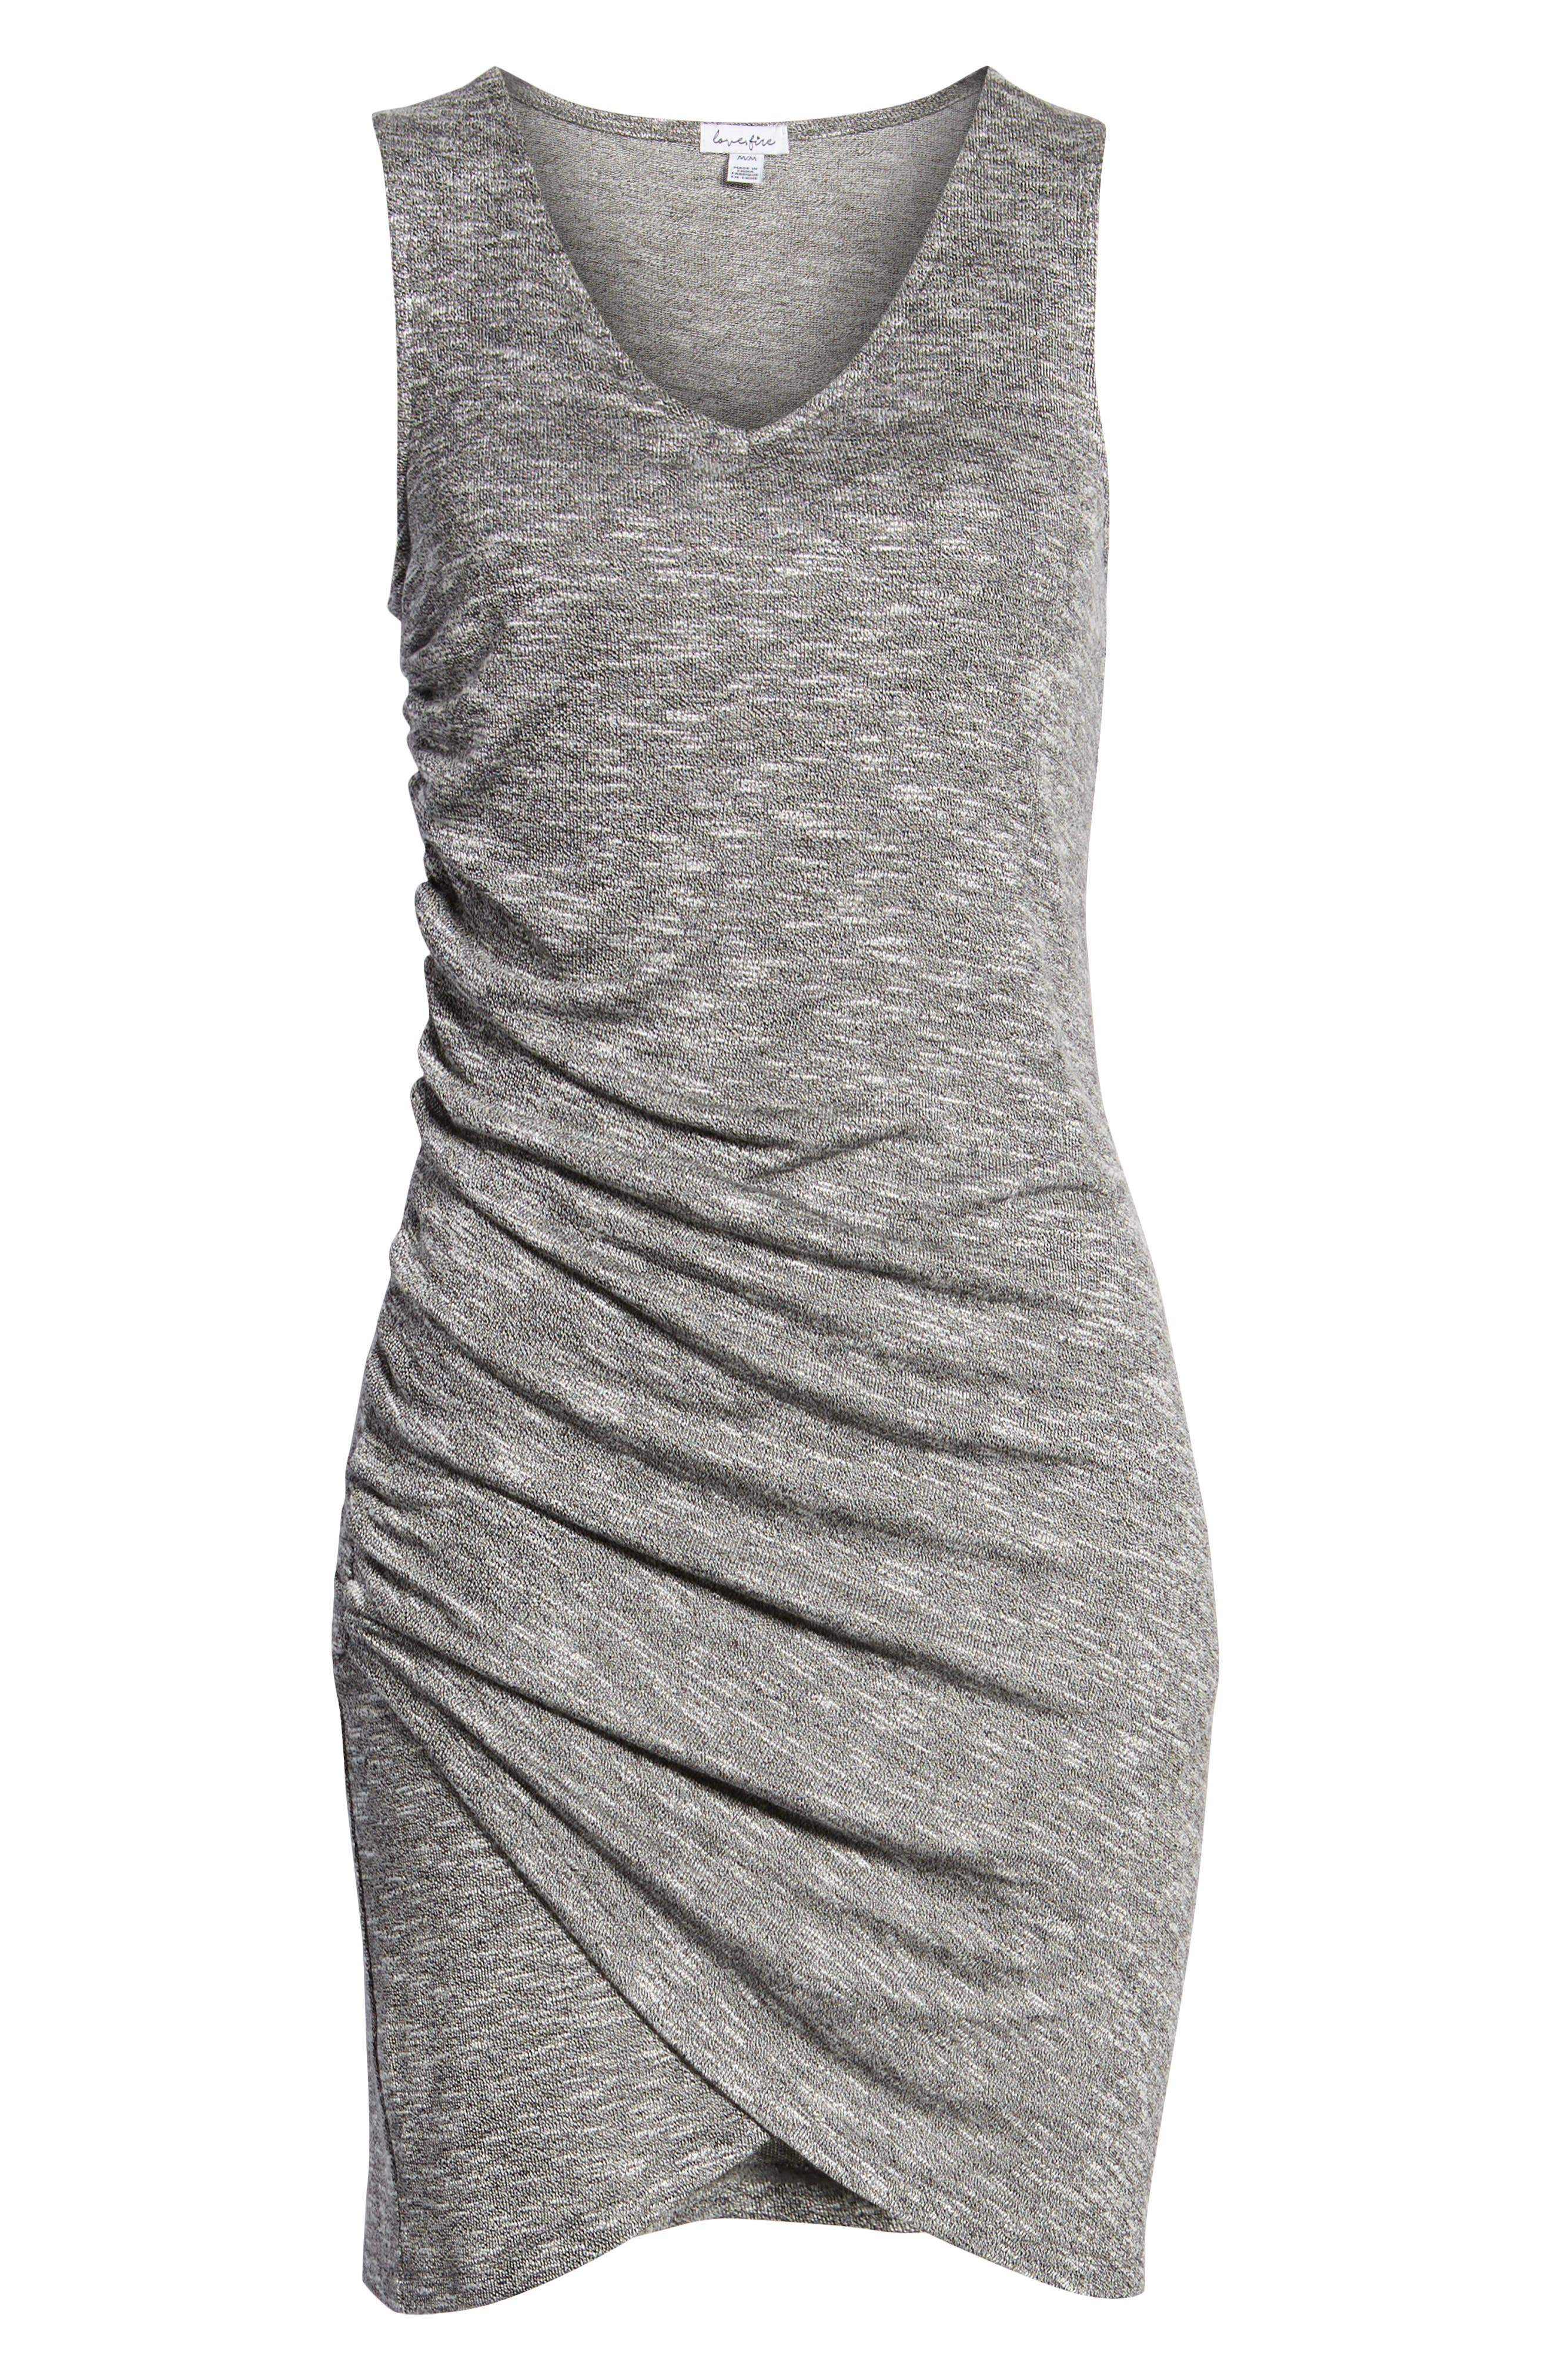 Ruched Tank Dress,                             Alternate thumbnail 7, color,                             Heather Grey